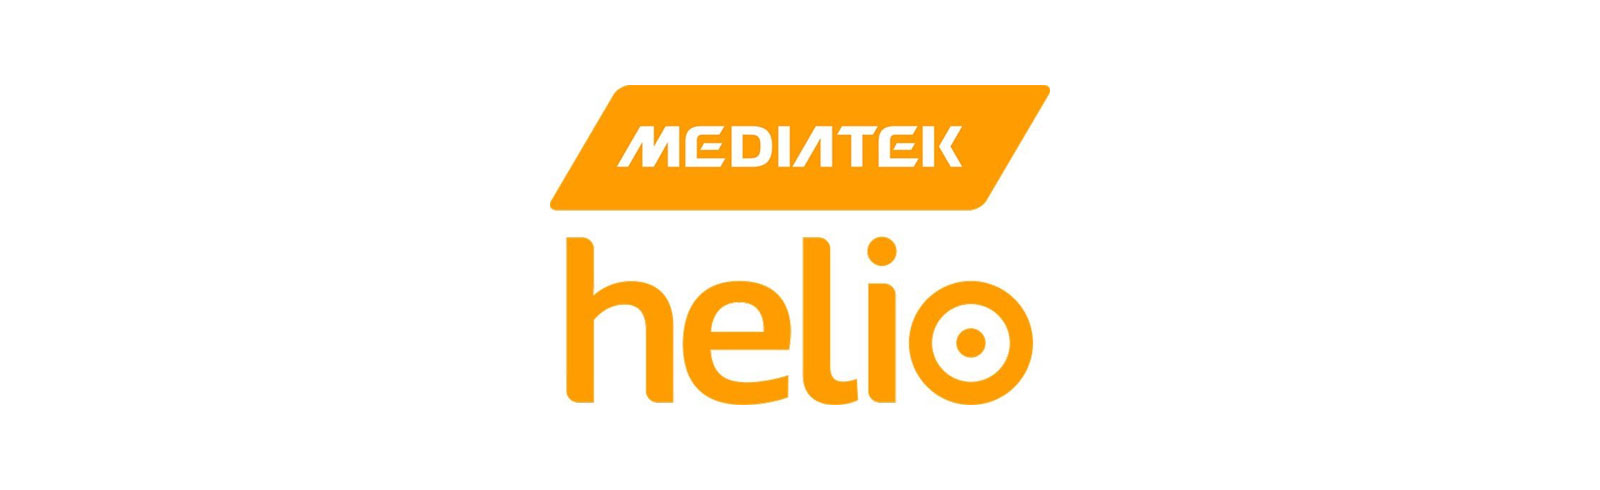 MediaTek teases its Helio G90 chipset for mobile gaming, will compete with the Snapdragon 855+